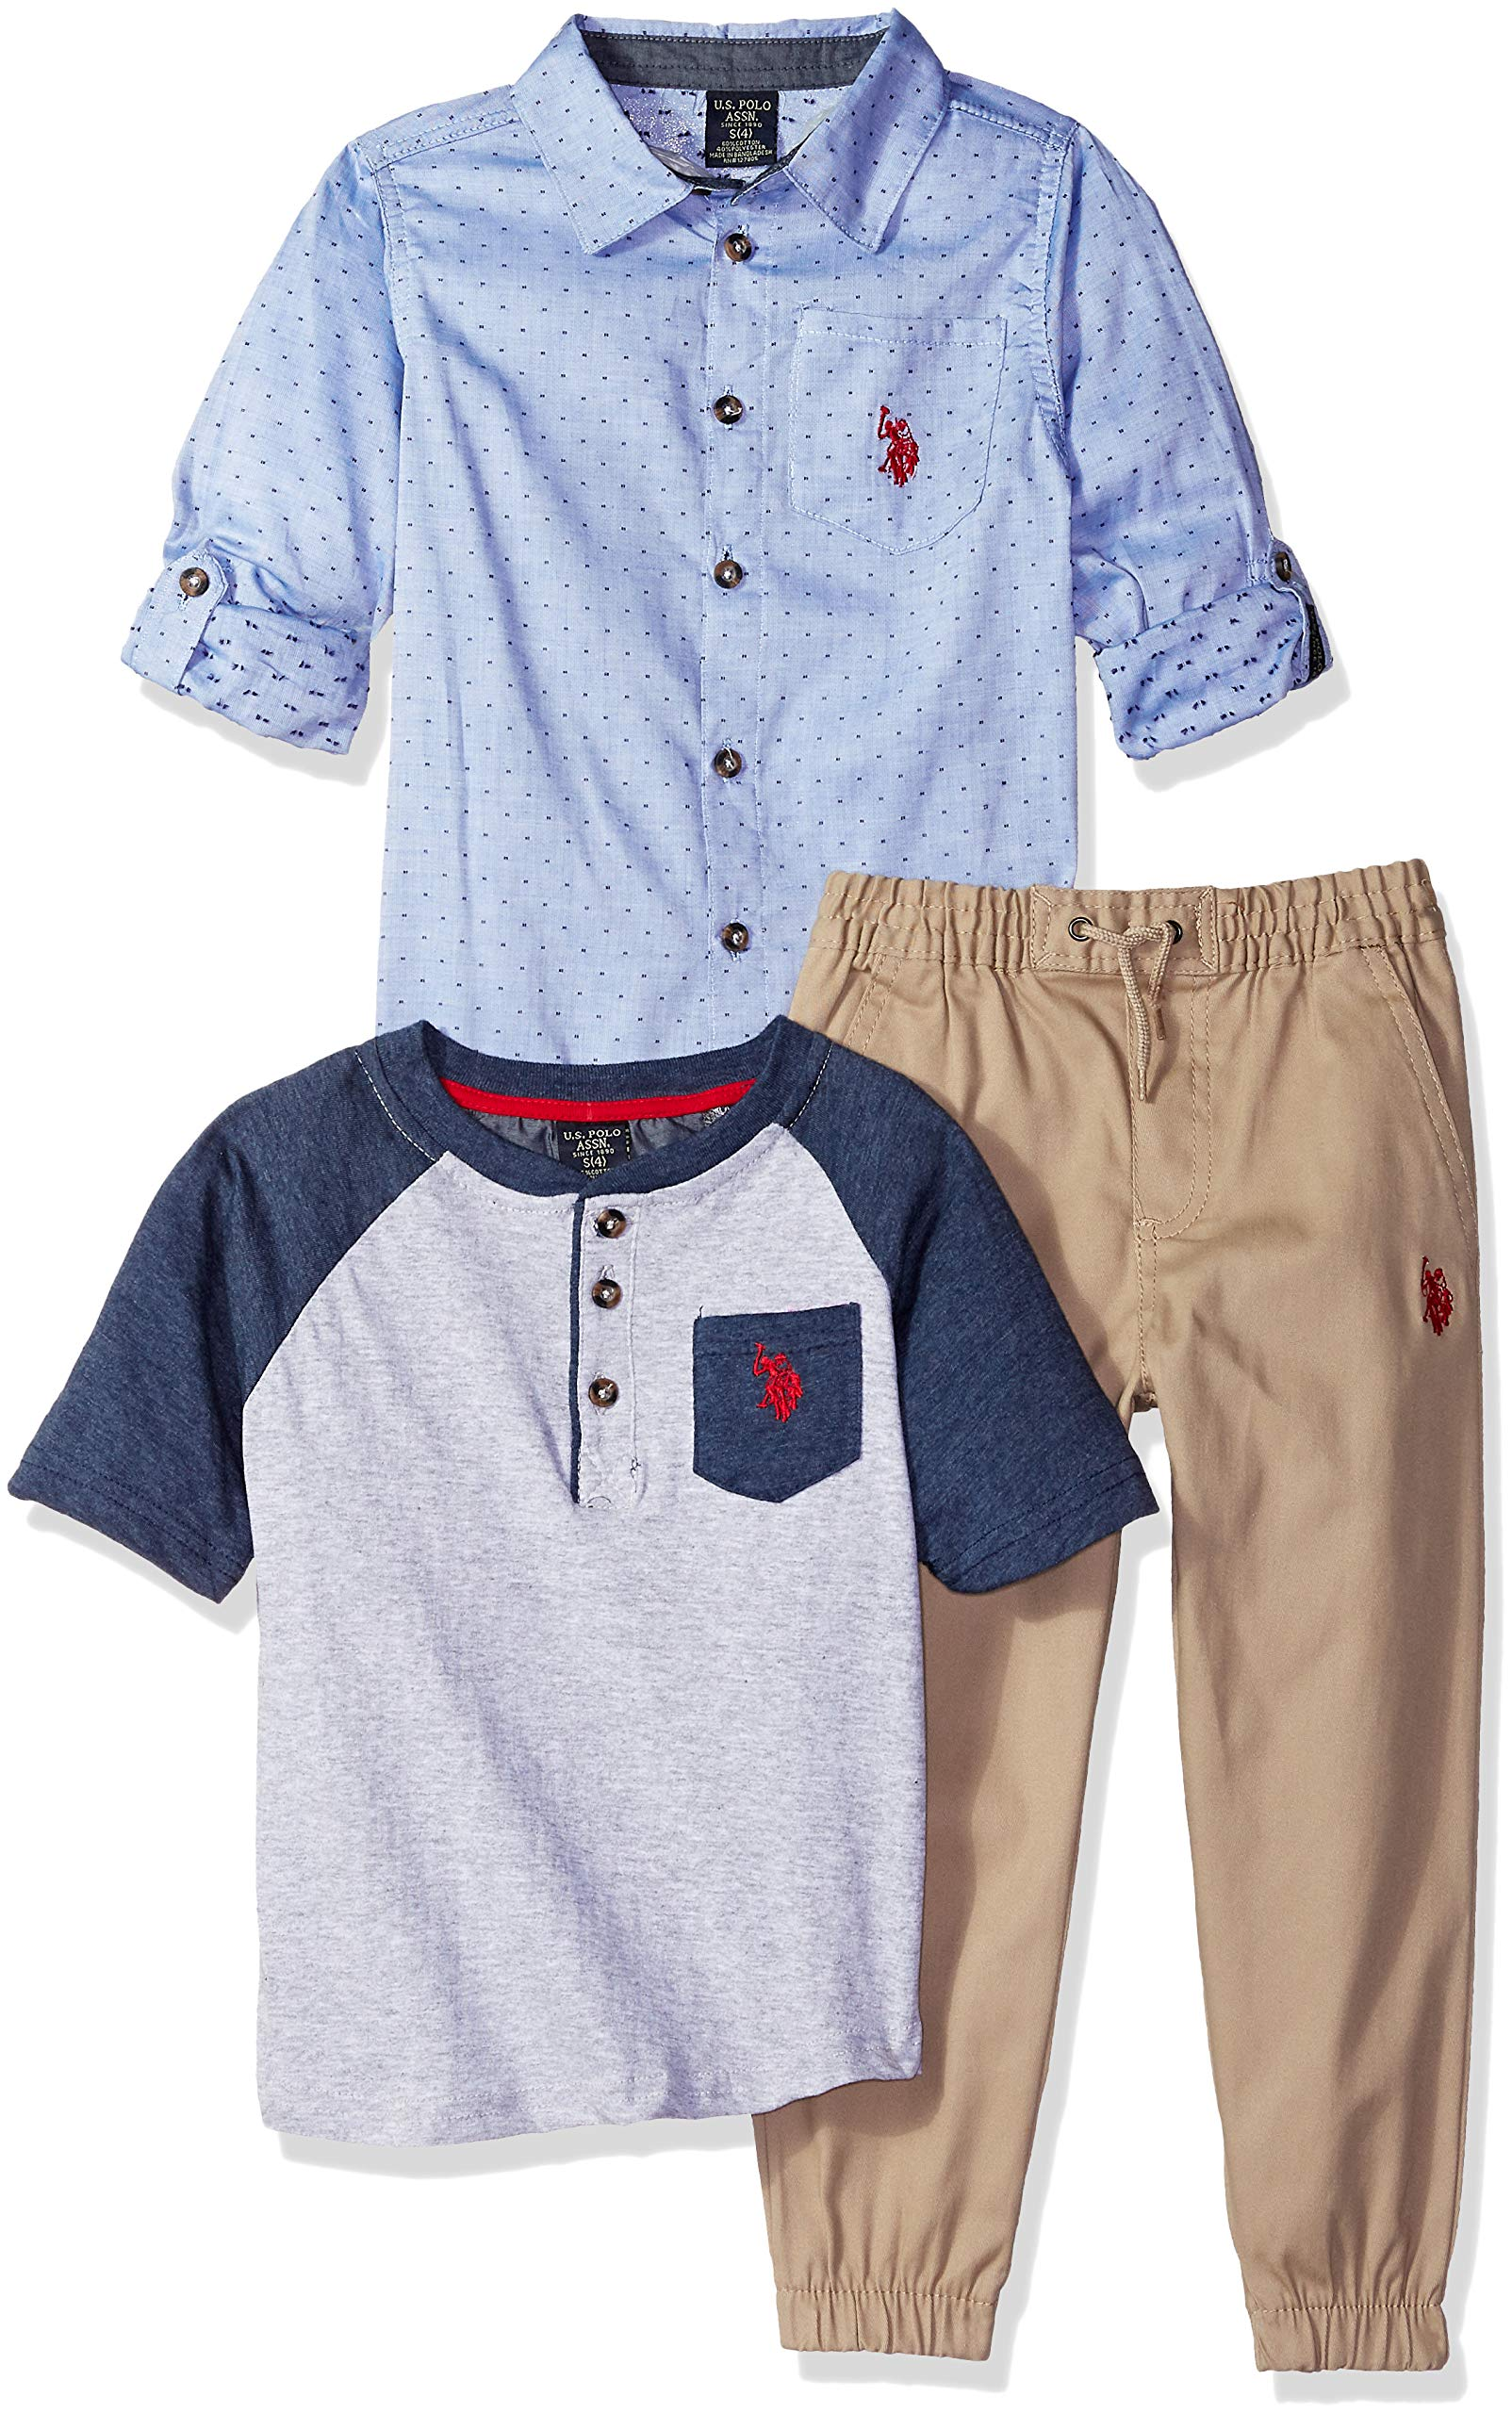 U.S. Polo Assn. Boys' Toddler Short Sleeve, T-Shirt and Pant Set, Dotted Blue Woven with Henley Multi Plaid, 4T